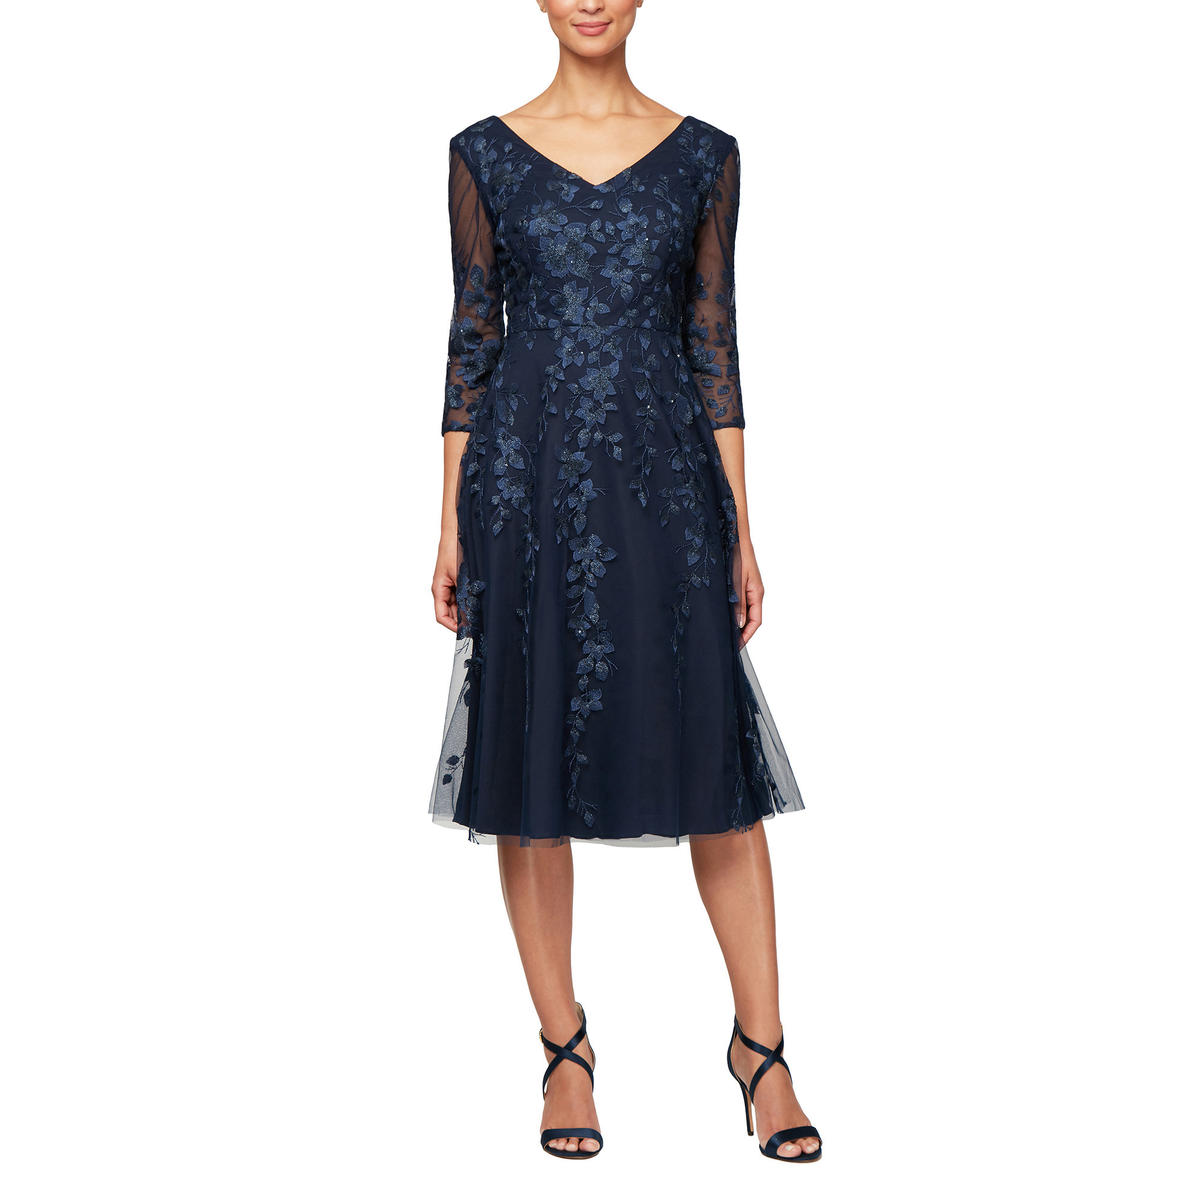 ALEX APPAREL GROUP INC - Long Sleeve Embroidered Lace Dress